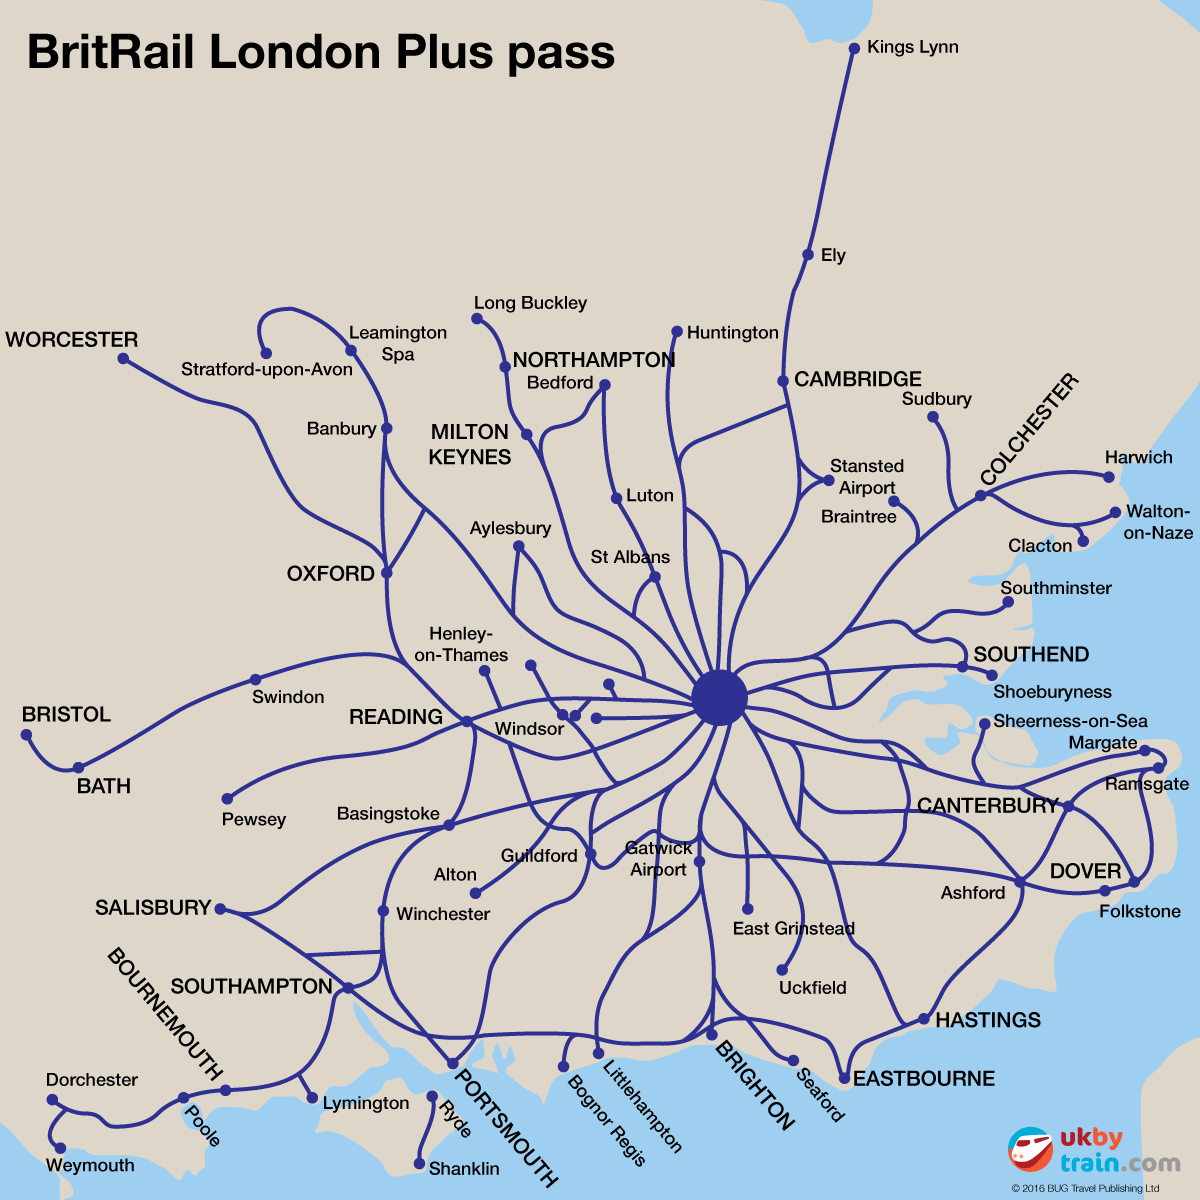 Map showing where you can travel using the BritRail London Plus rail pass